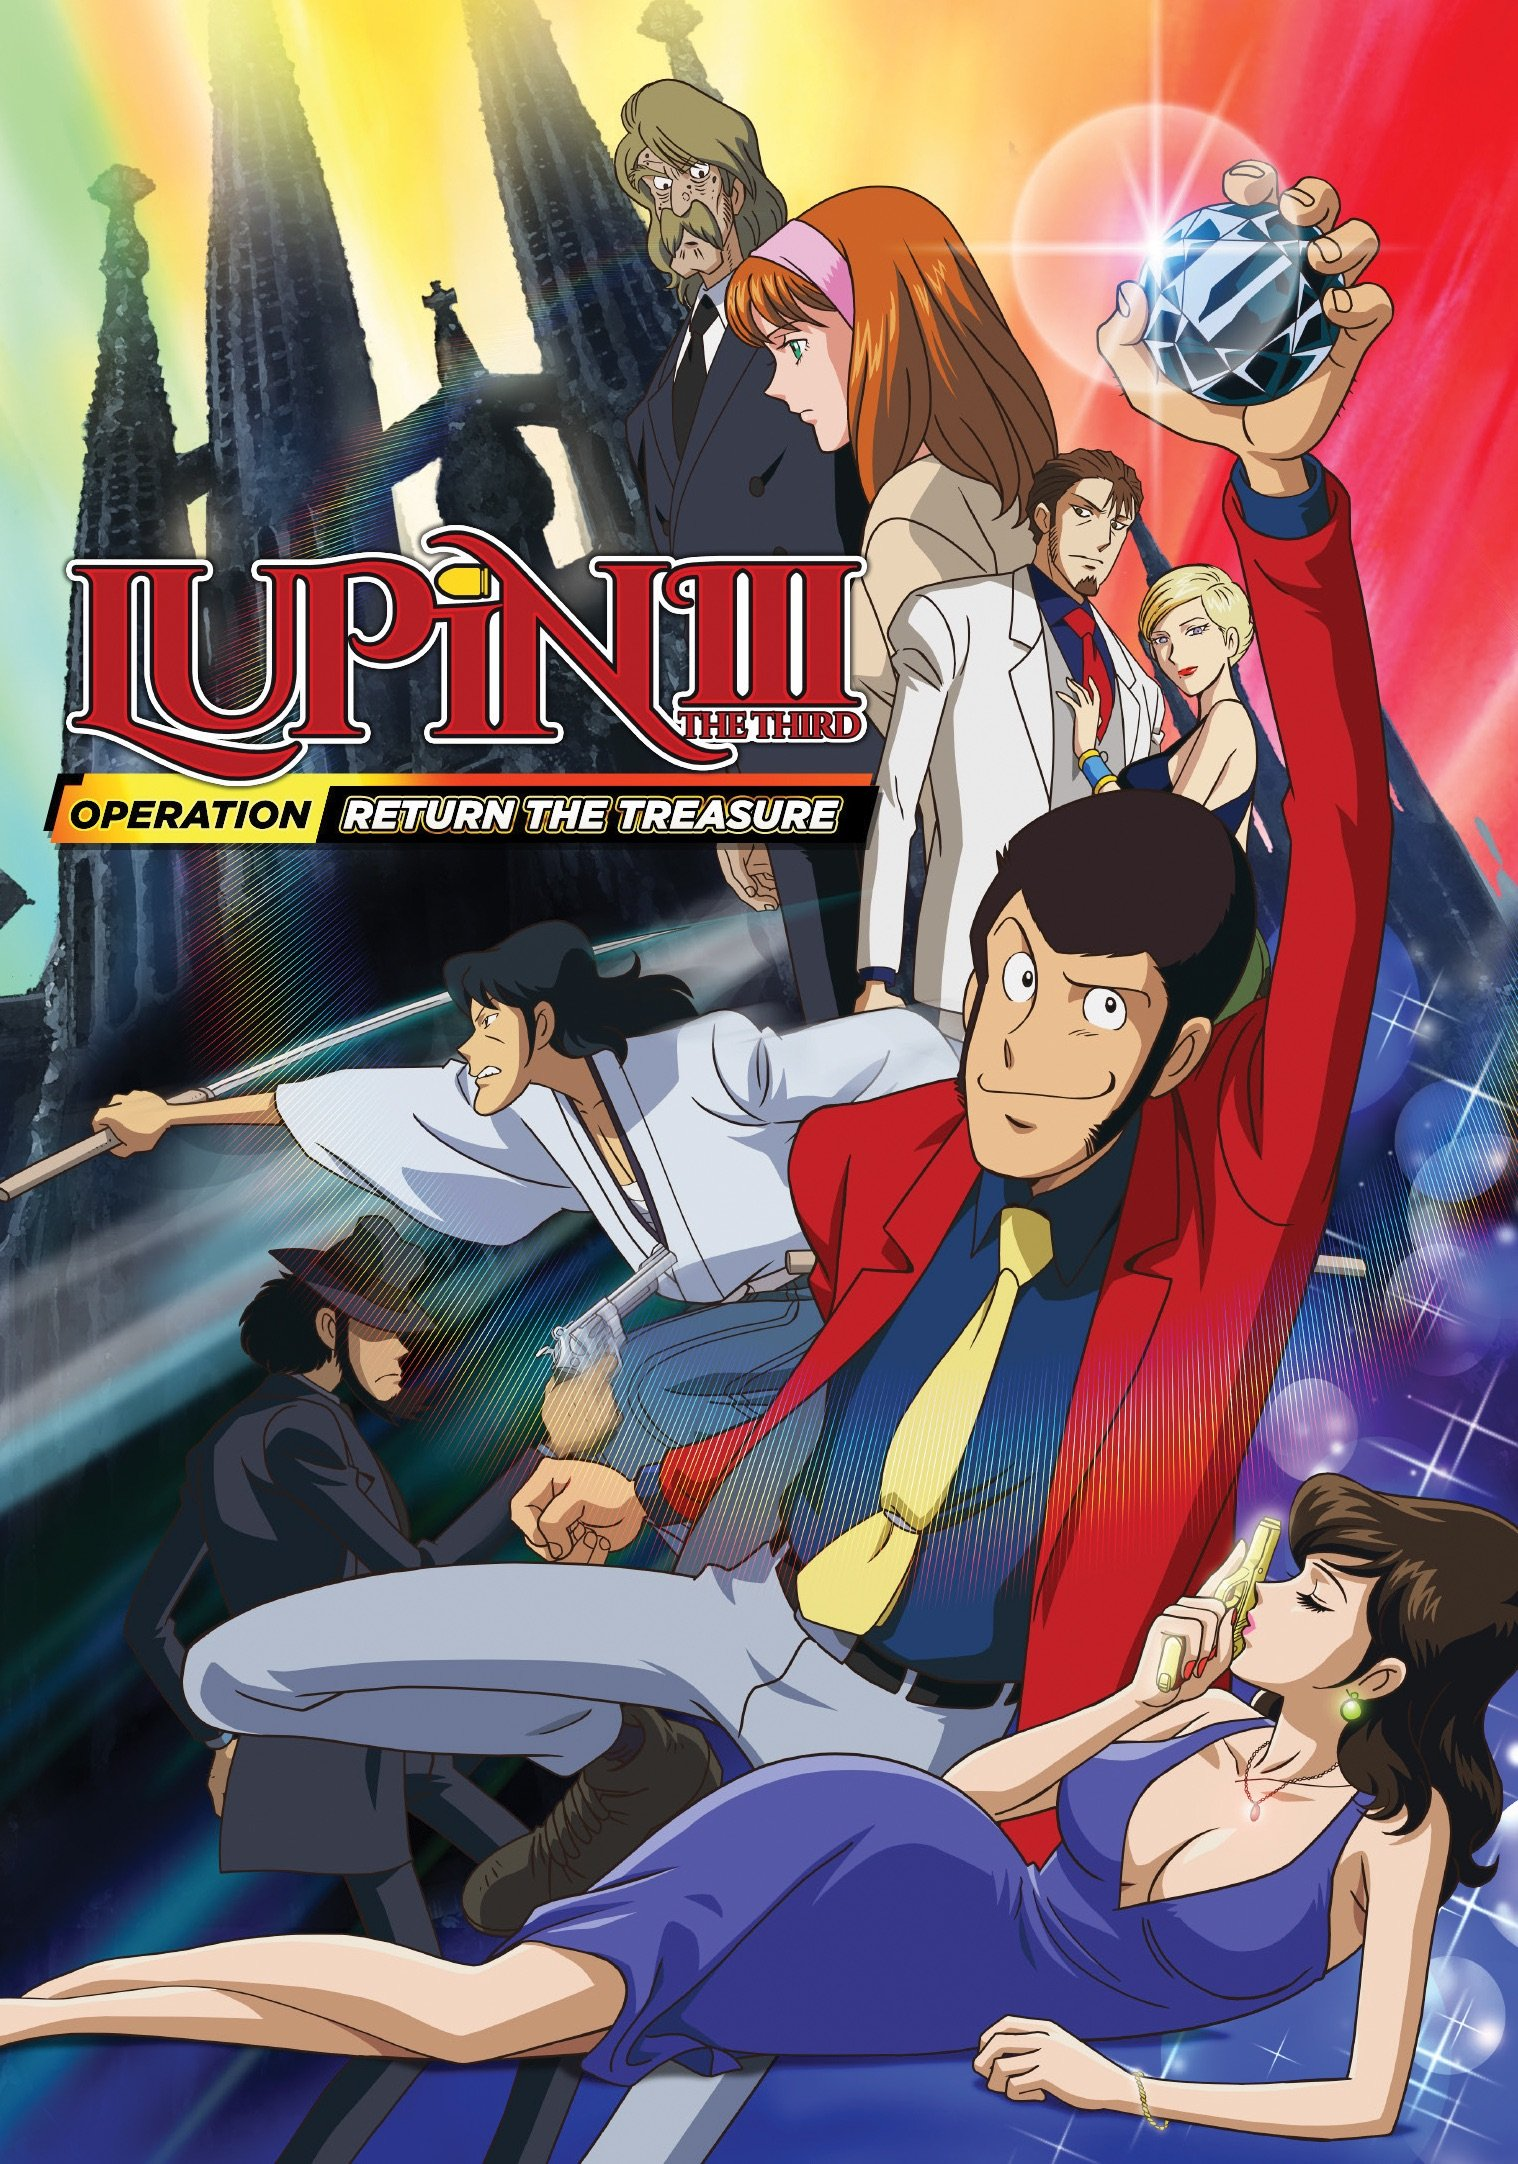 DVD : Lupin the 3rd: Operation Return the Treasure - Lupin The 3rd: Operation Return The Treasure (DVD)